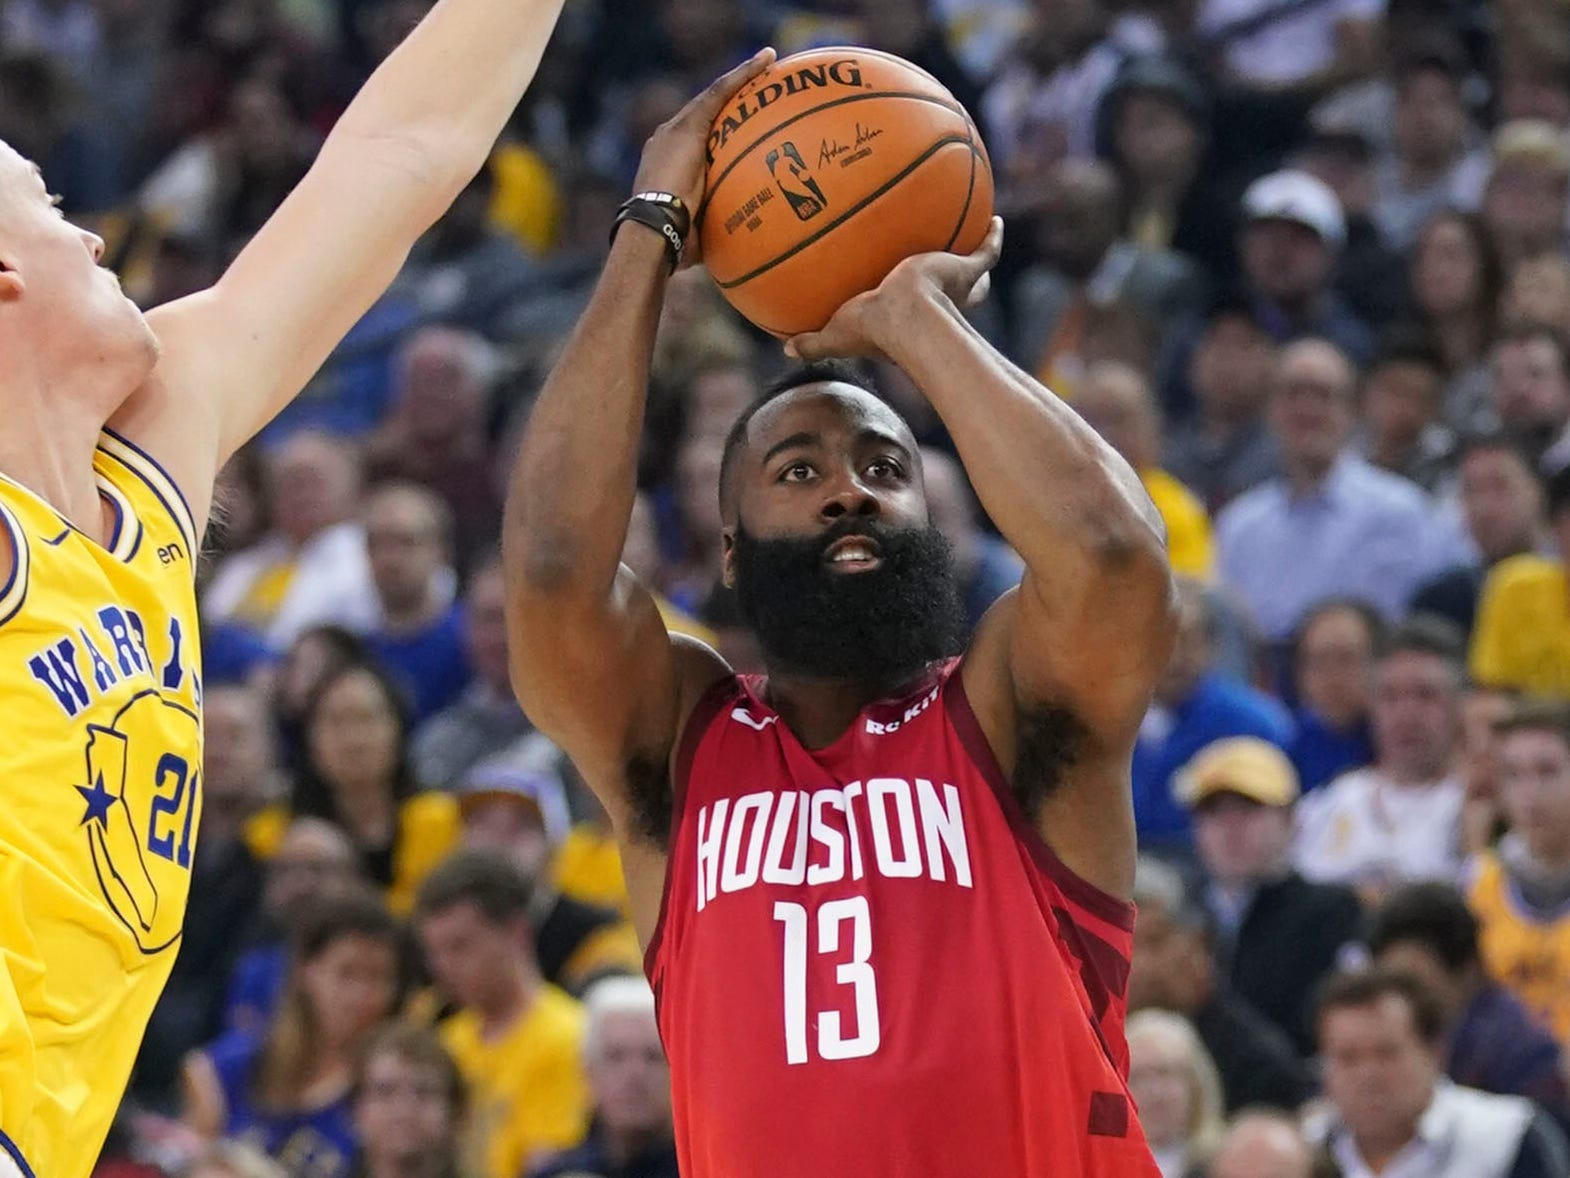 43. James Harden, Rockets (Jan. 3): 44 points, 15 assists, 10 rebounds in 135-134 win over Warriors (fifth of season).